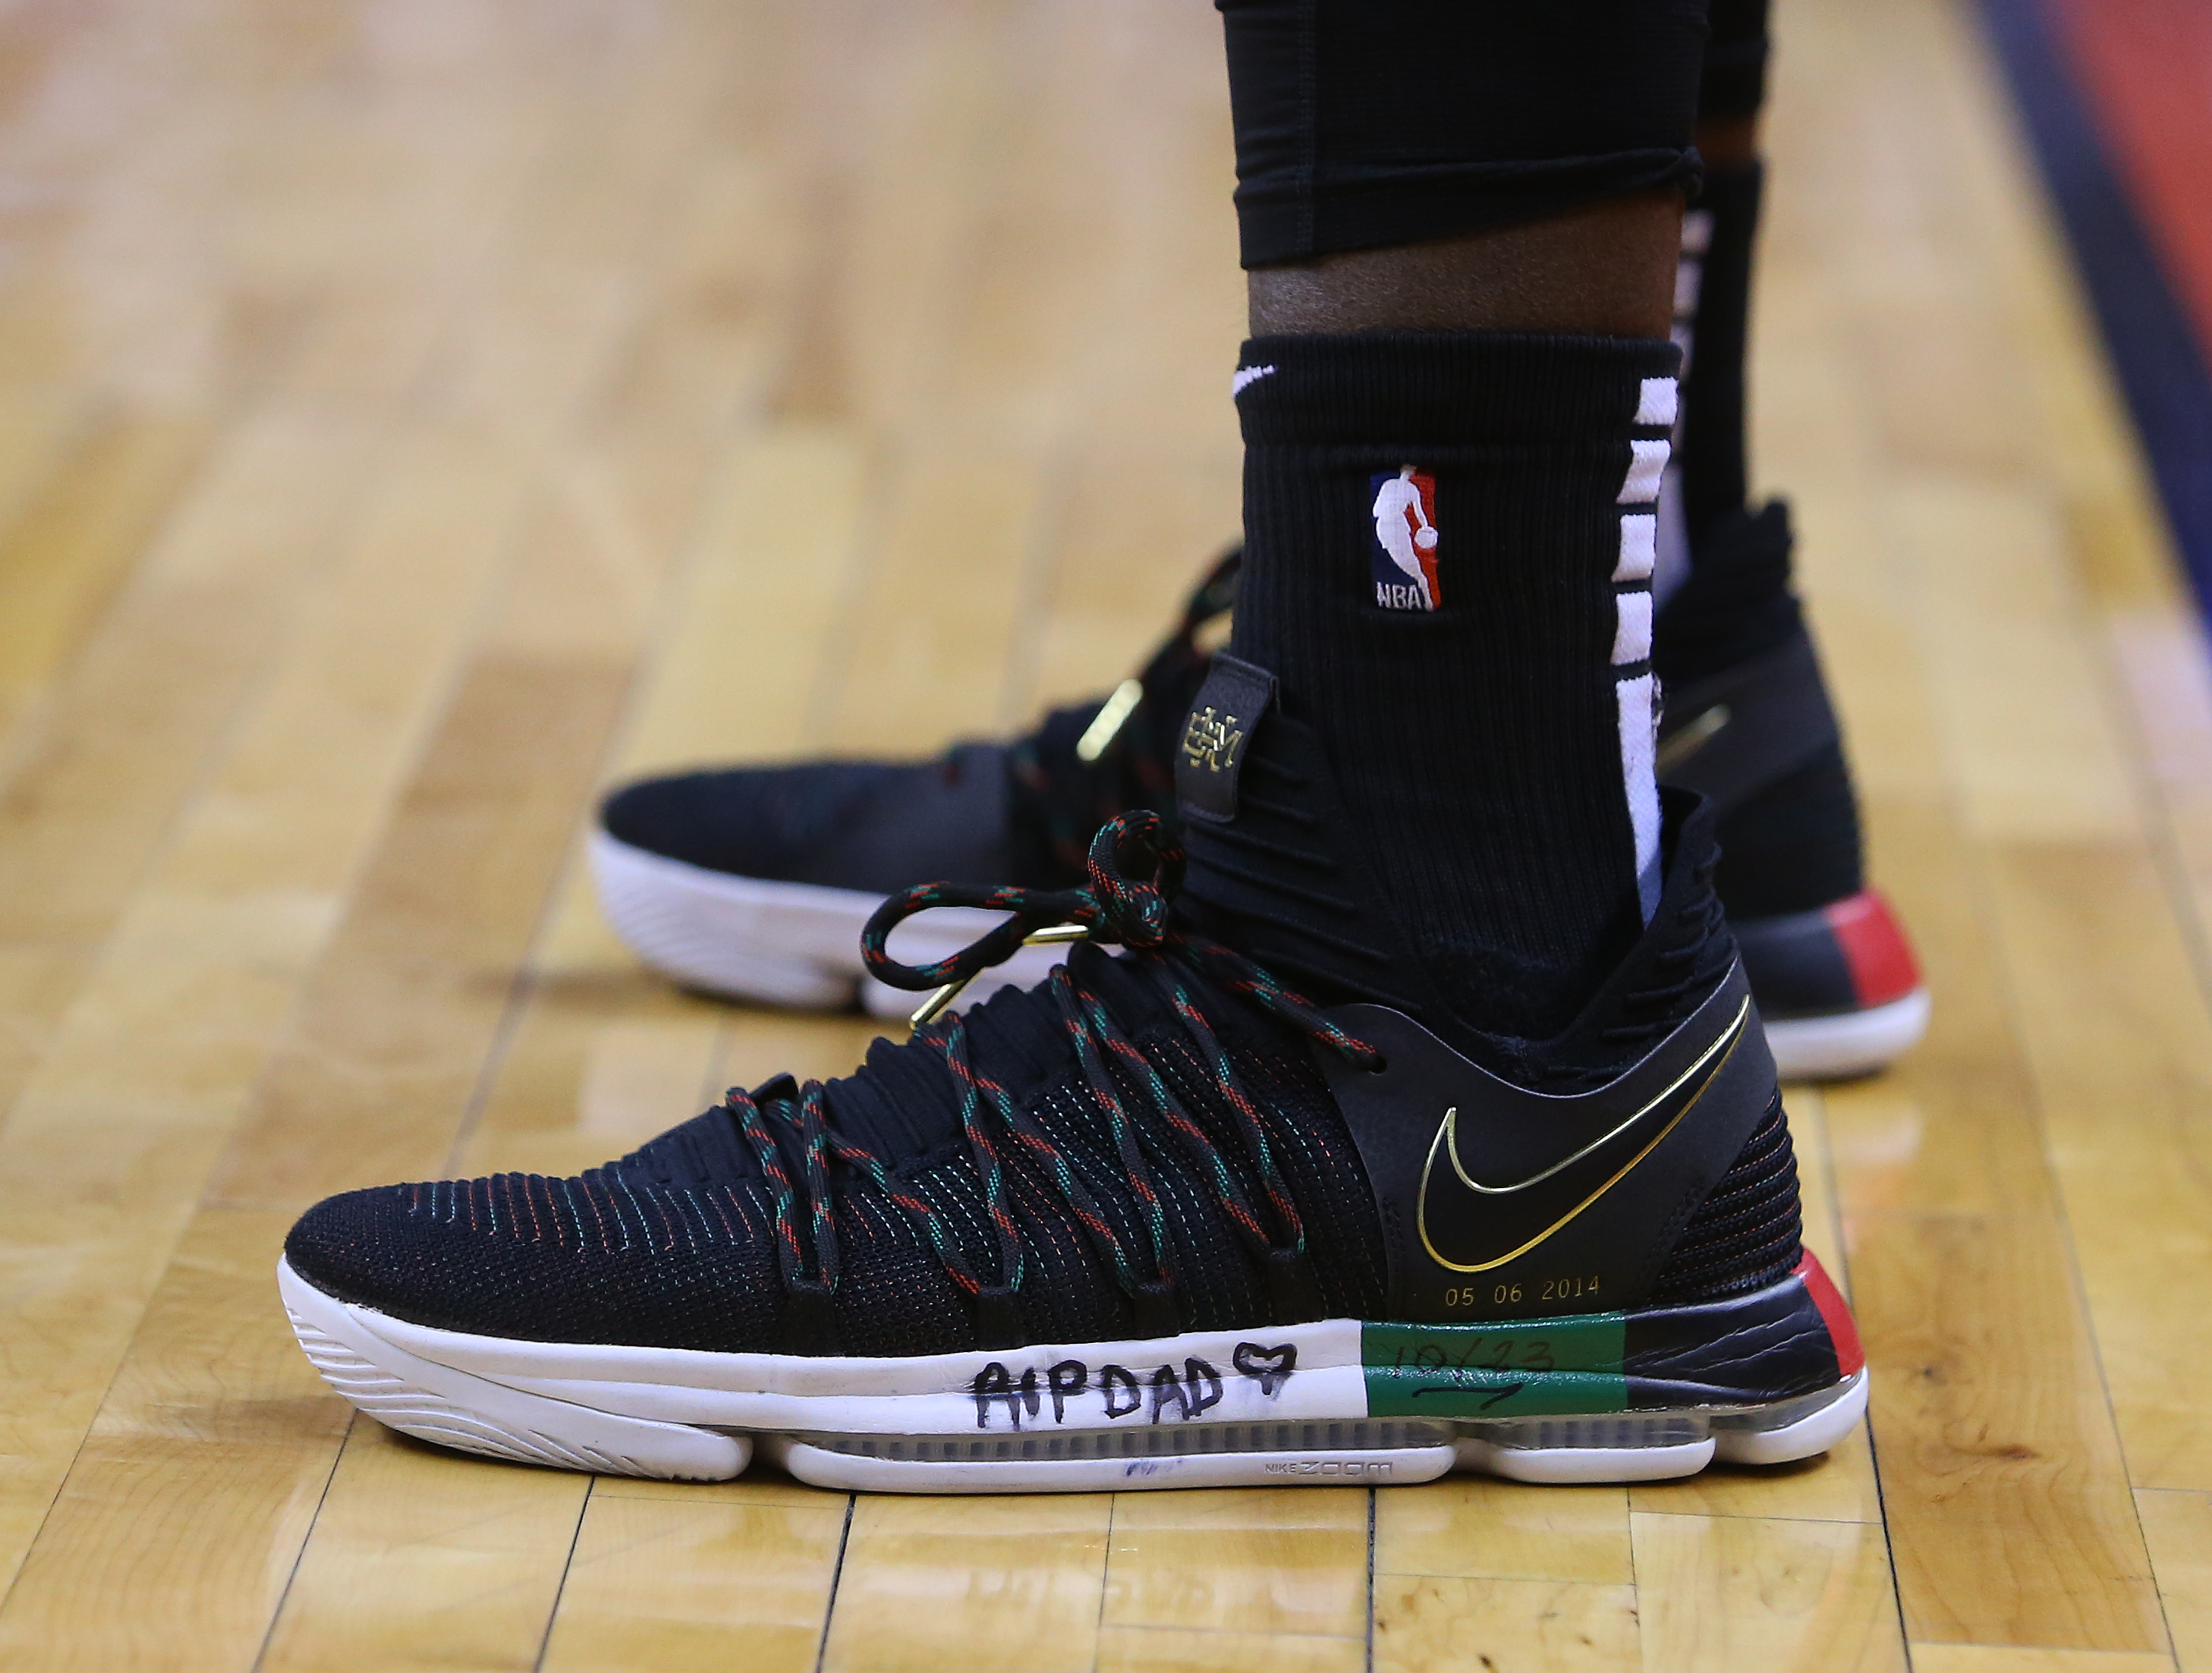 Pascal Siakam's Shoes: What's Written on Them?